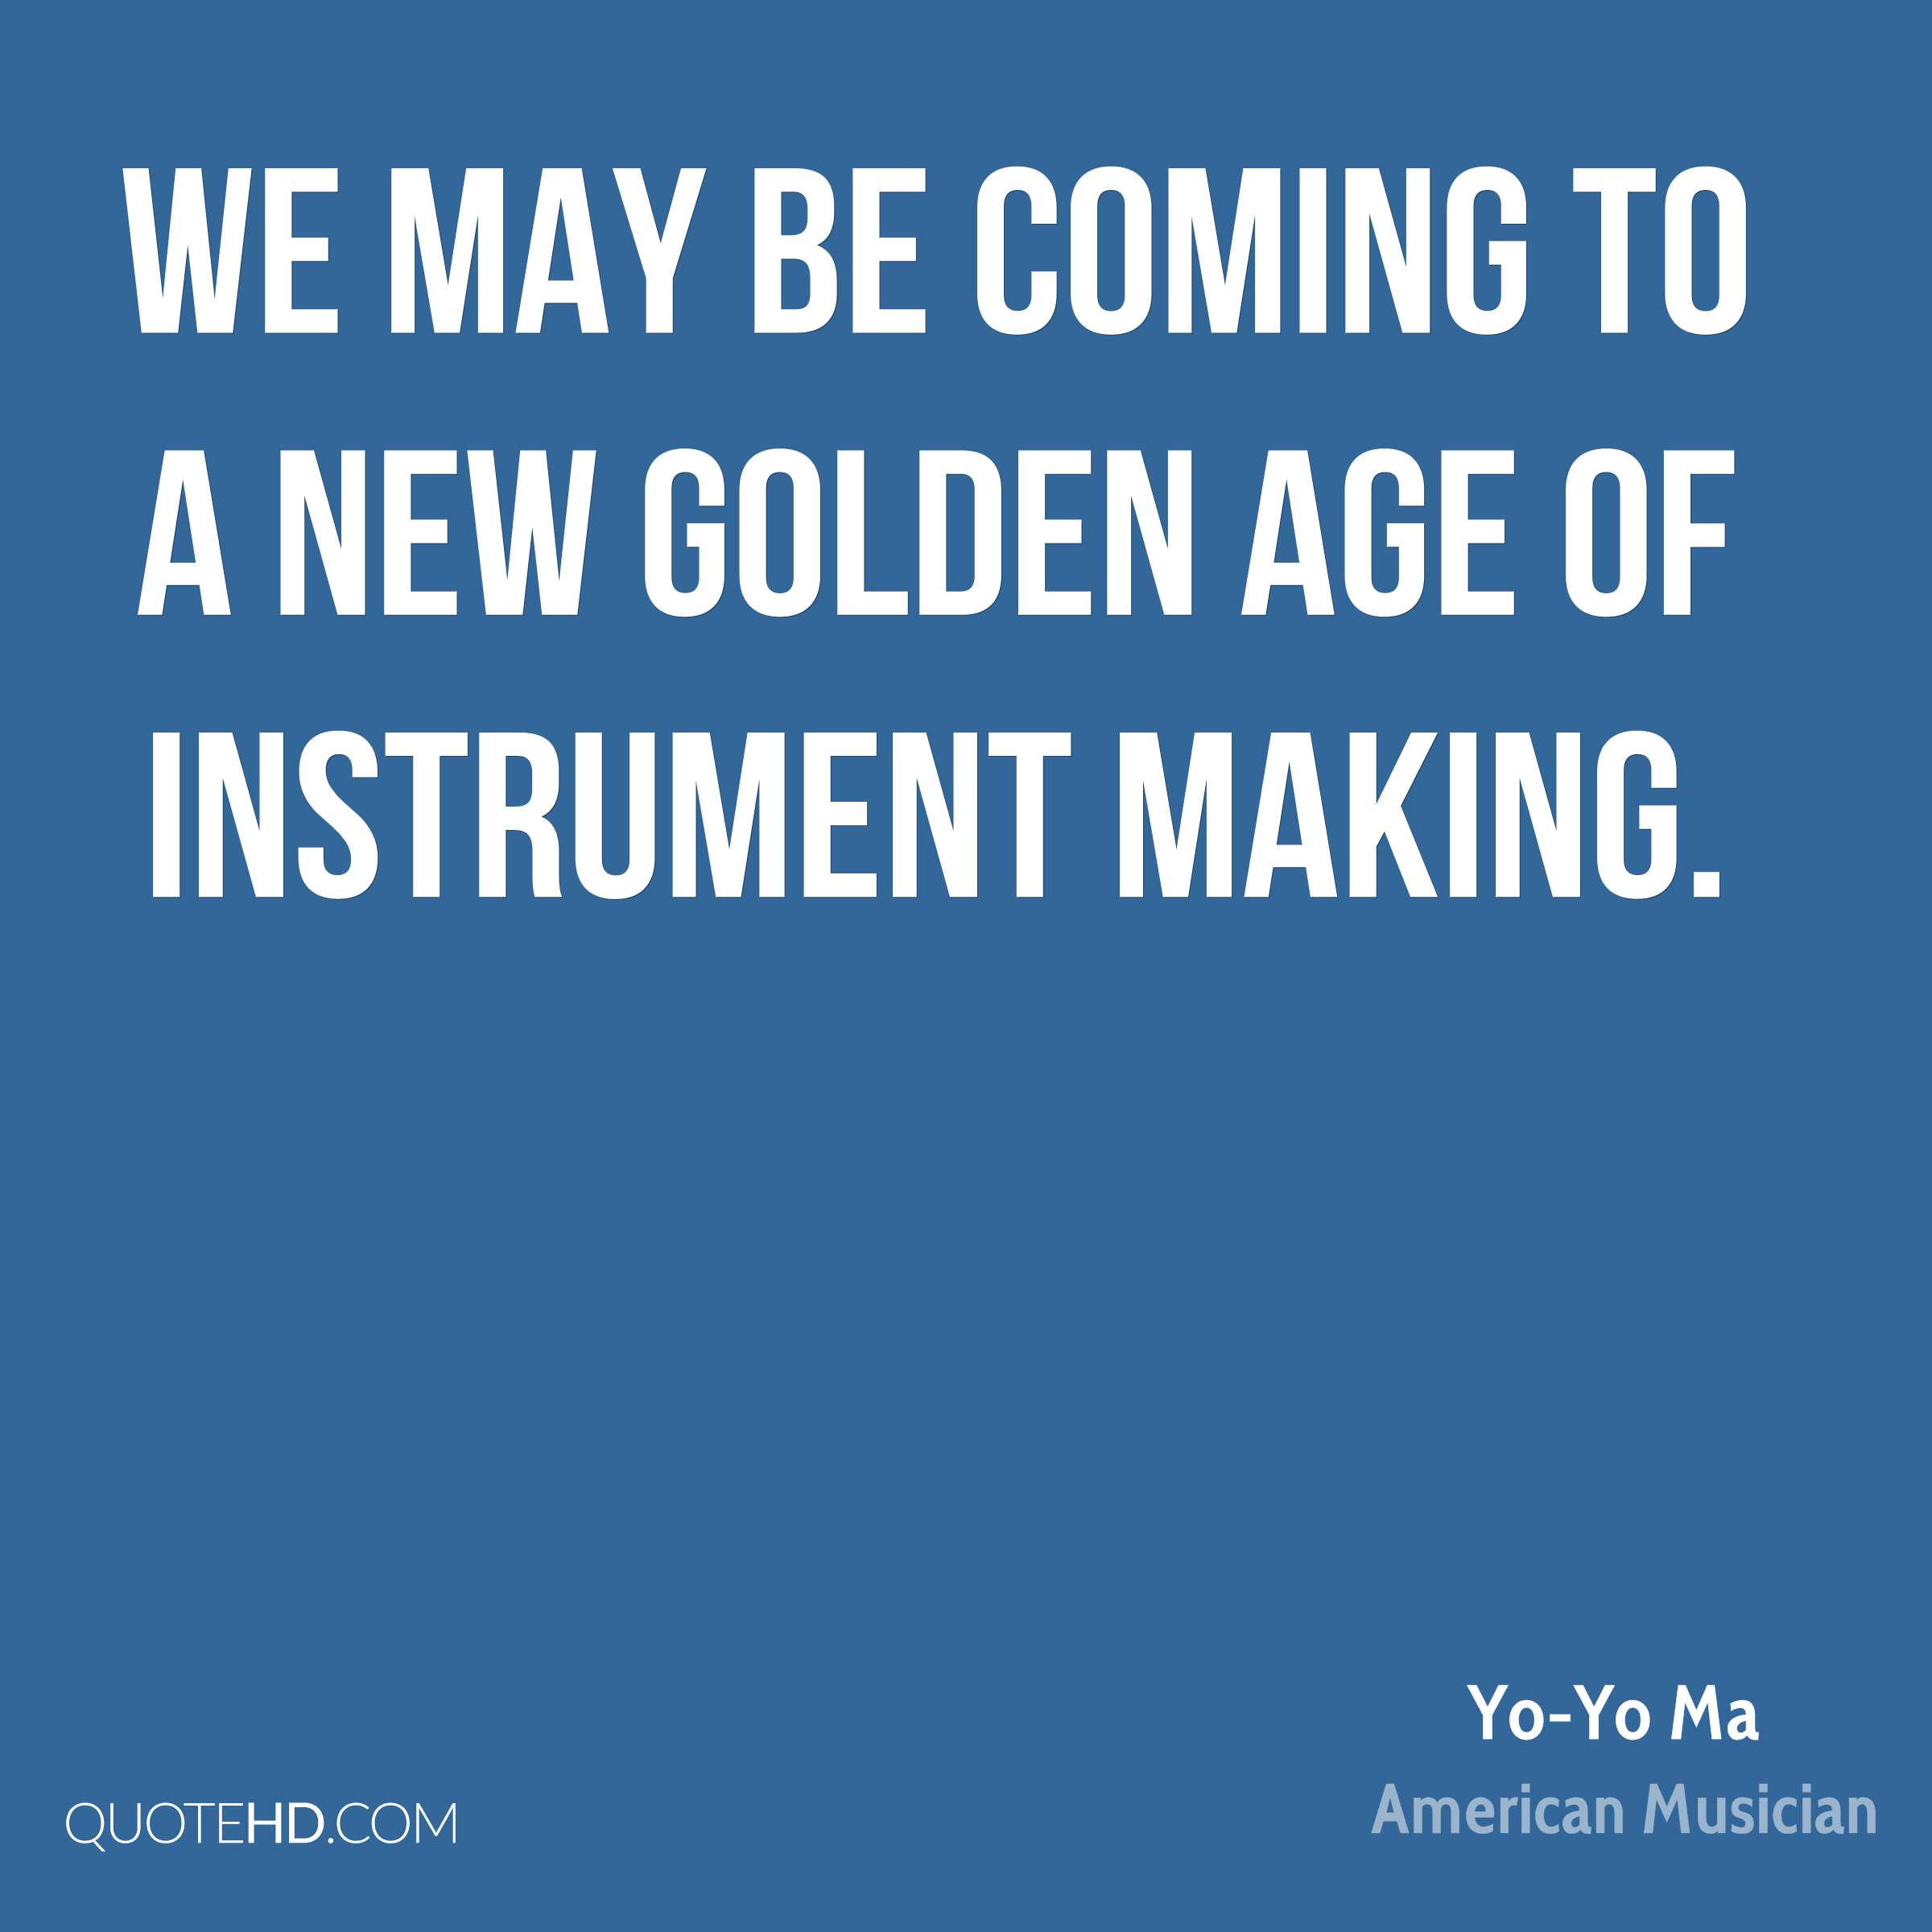 We may be coming to a new golden age of instrument making.